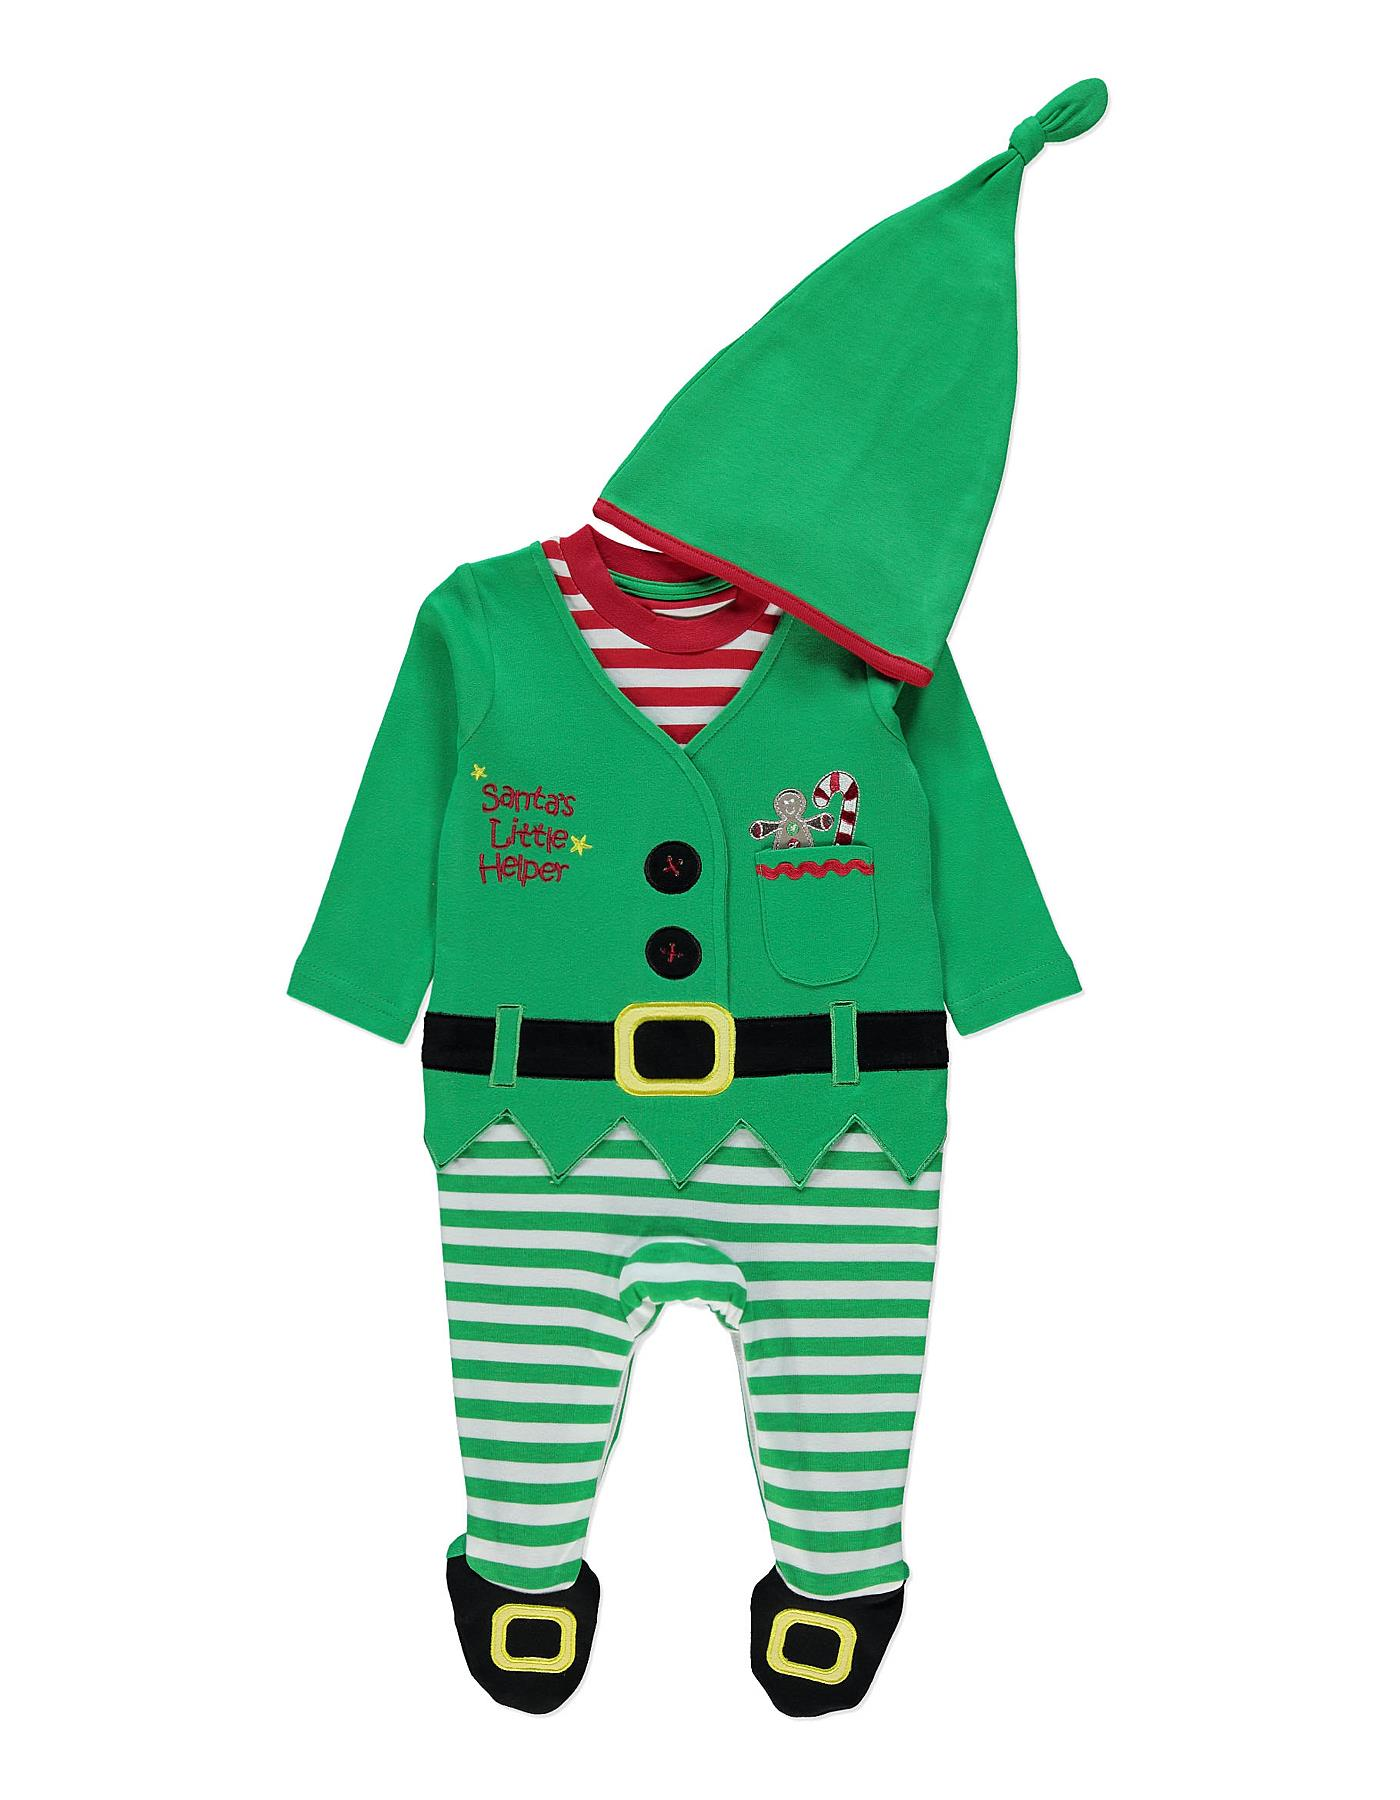 Santa's Guide to Cool Kids' Christmas Clothes, Green Santa%, new-dad%